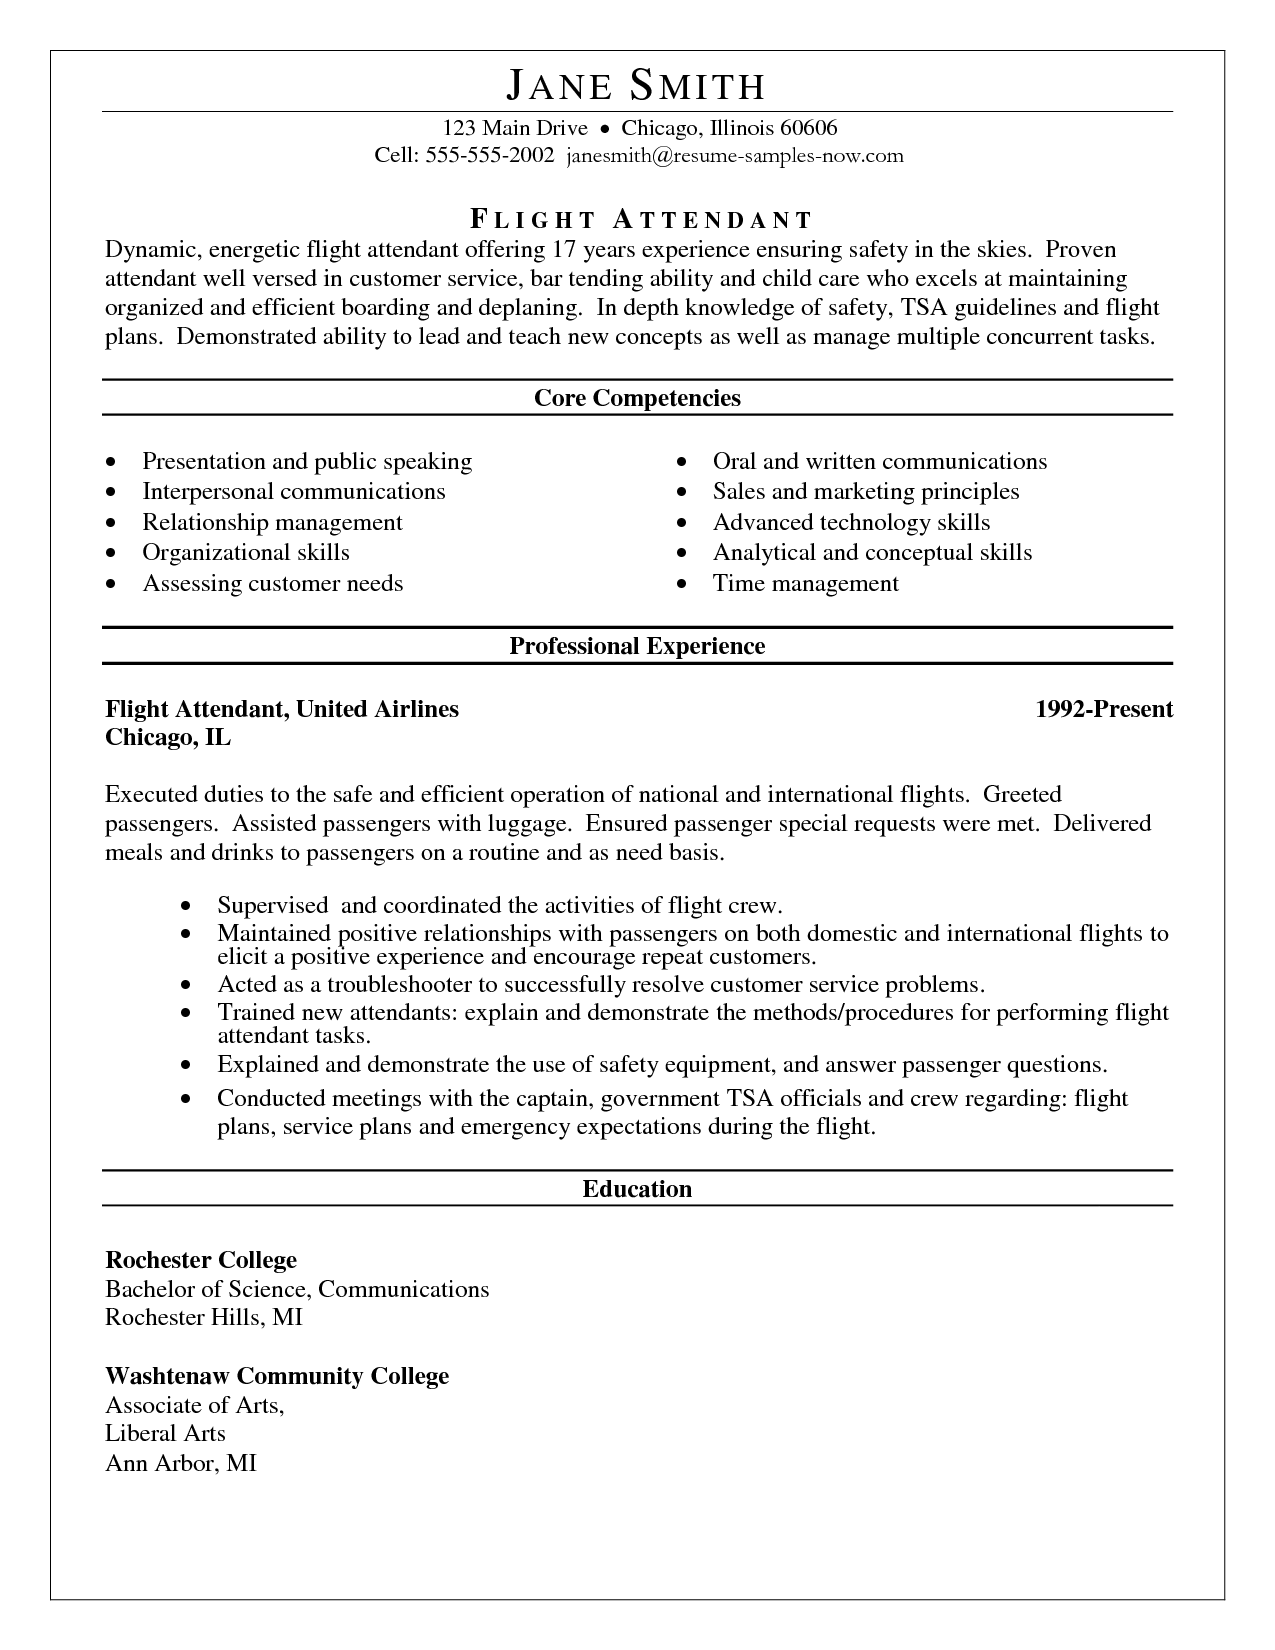 Core Competencies Resume  Resume Competencies